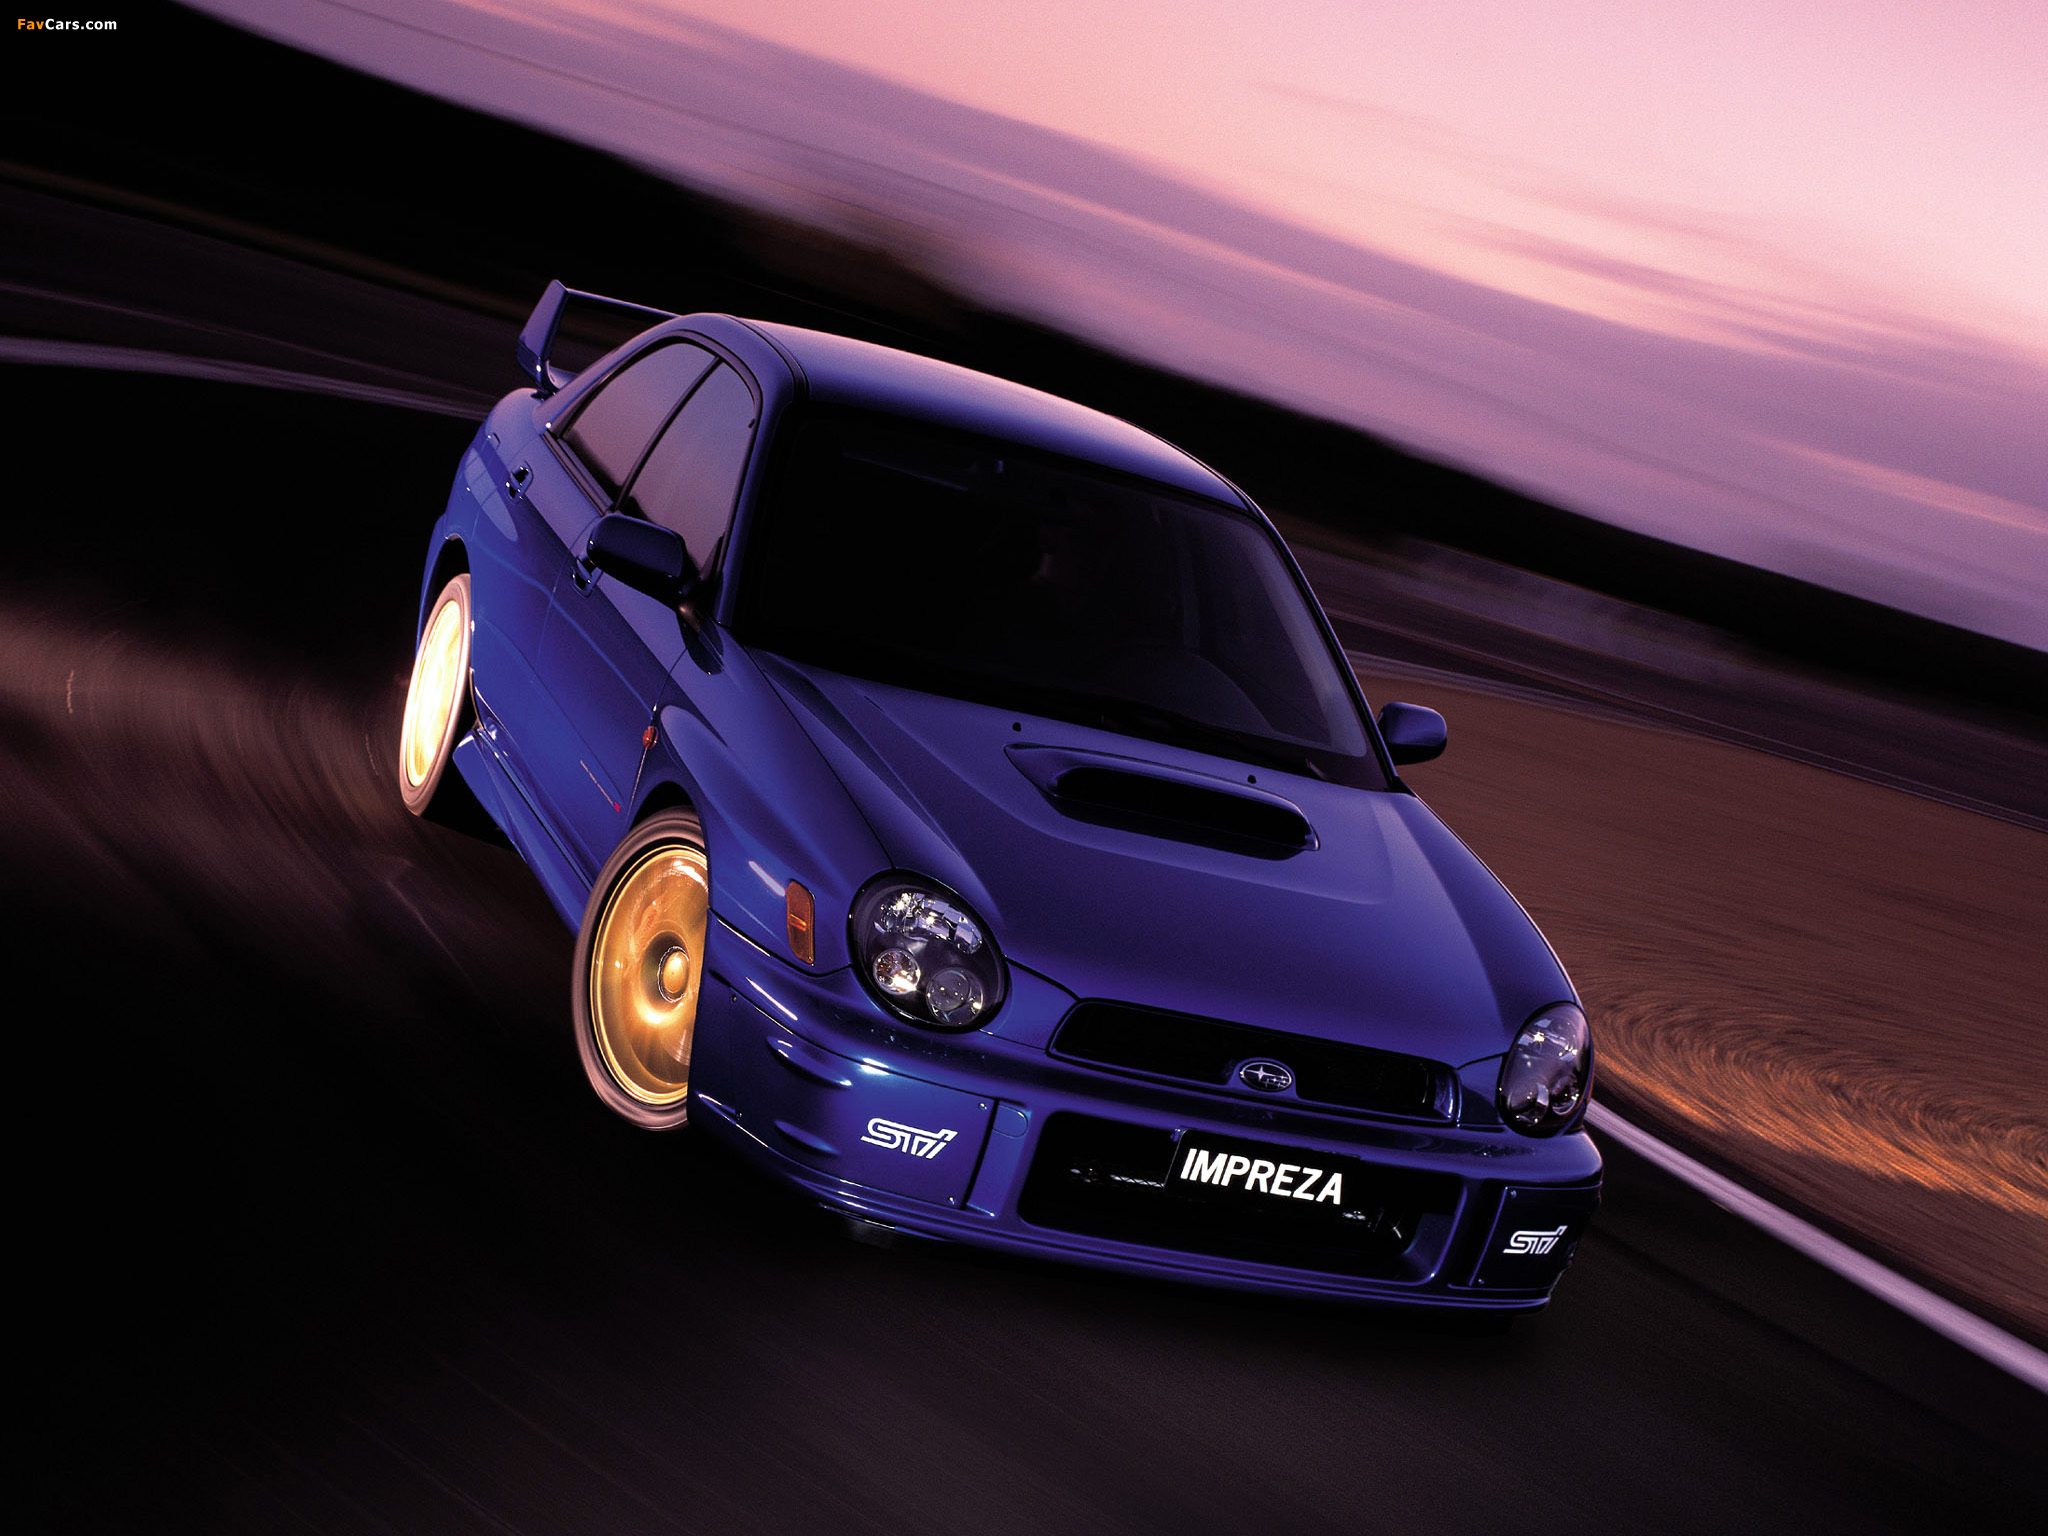 Subaru Impreza Wrx Sti 2001 02 Wallpapers 2048x1536